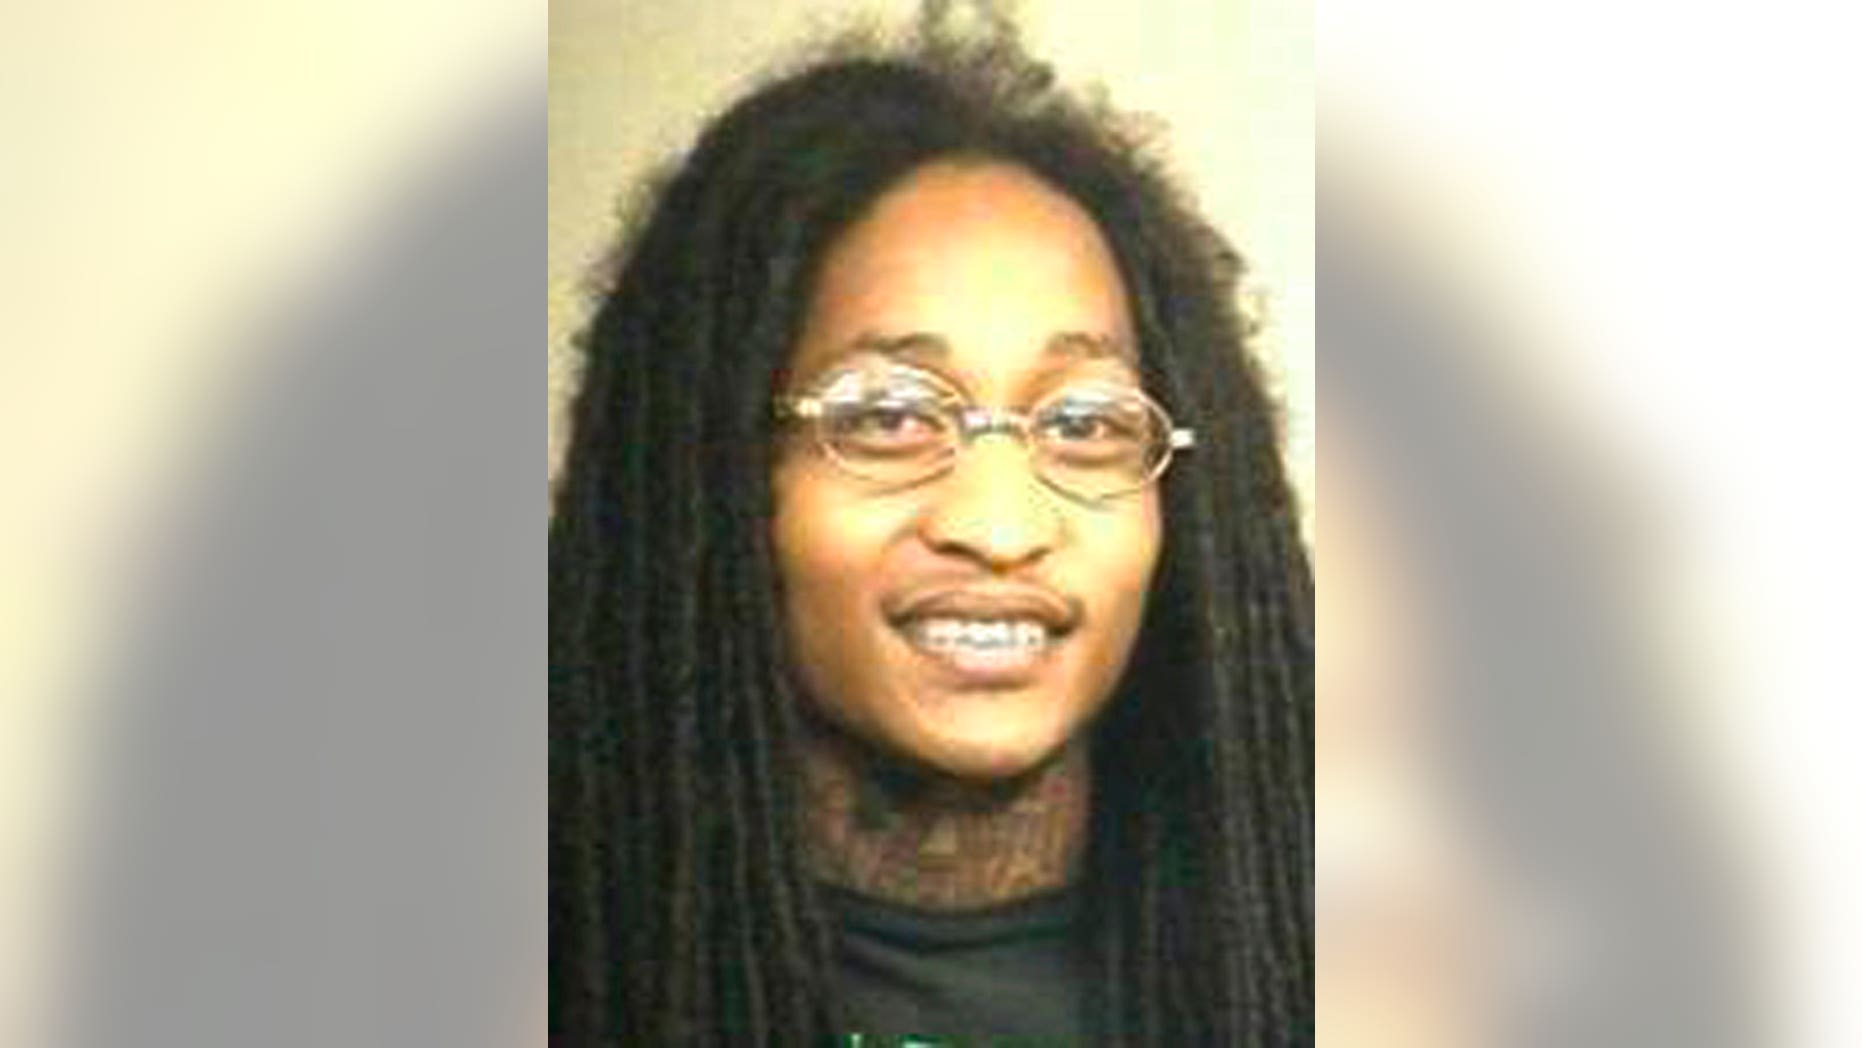 Maurice Forte was charged with three counts of murder in connection with the deaths of his mother, grandmother and sister.